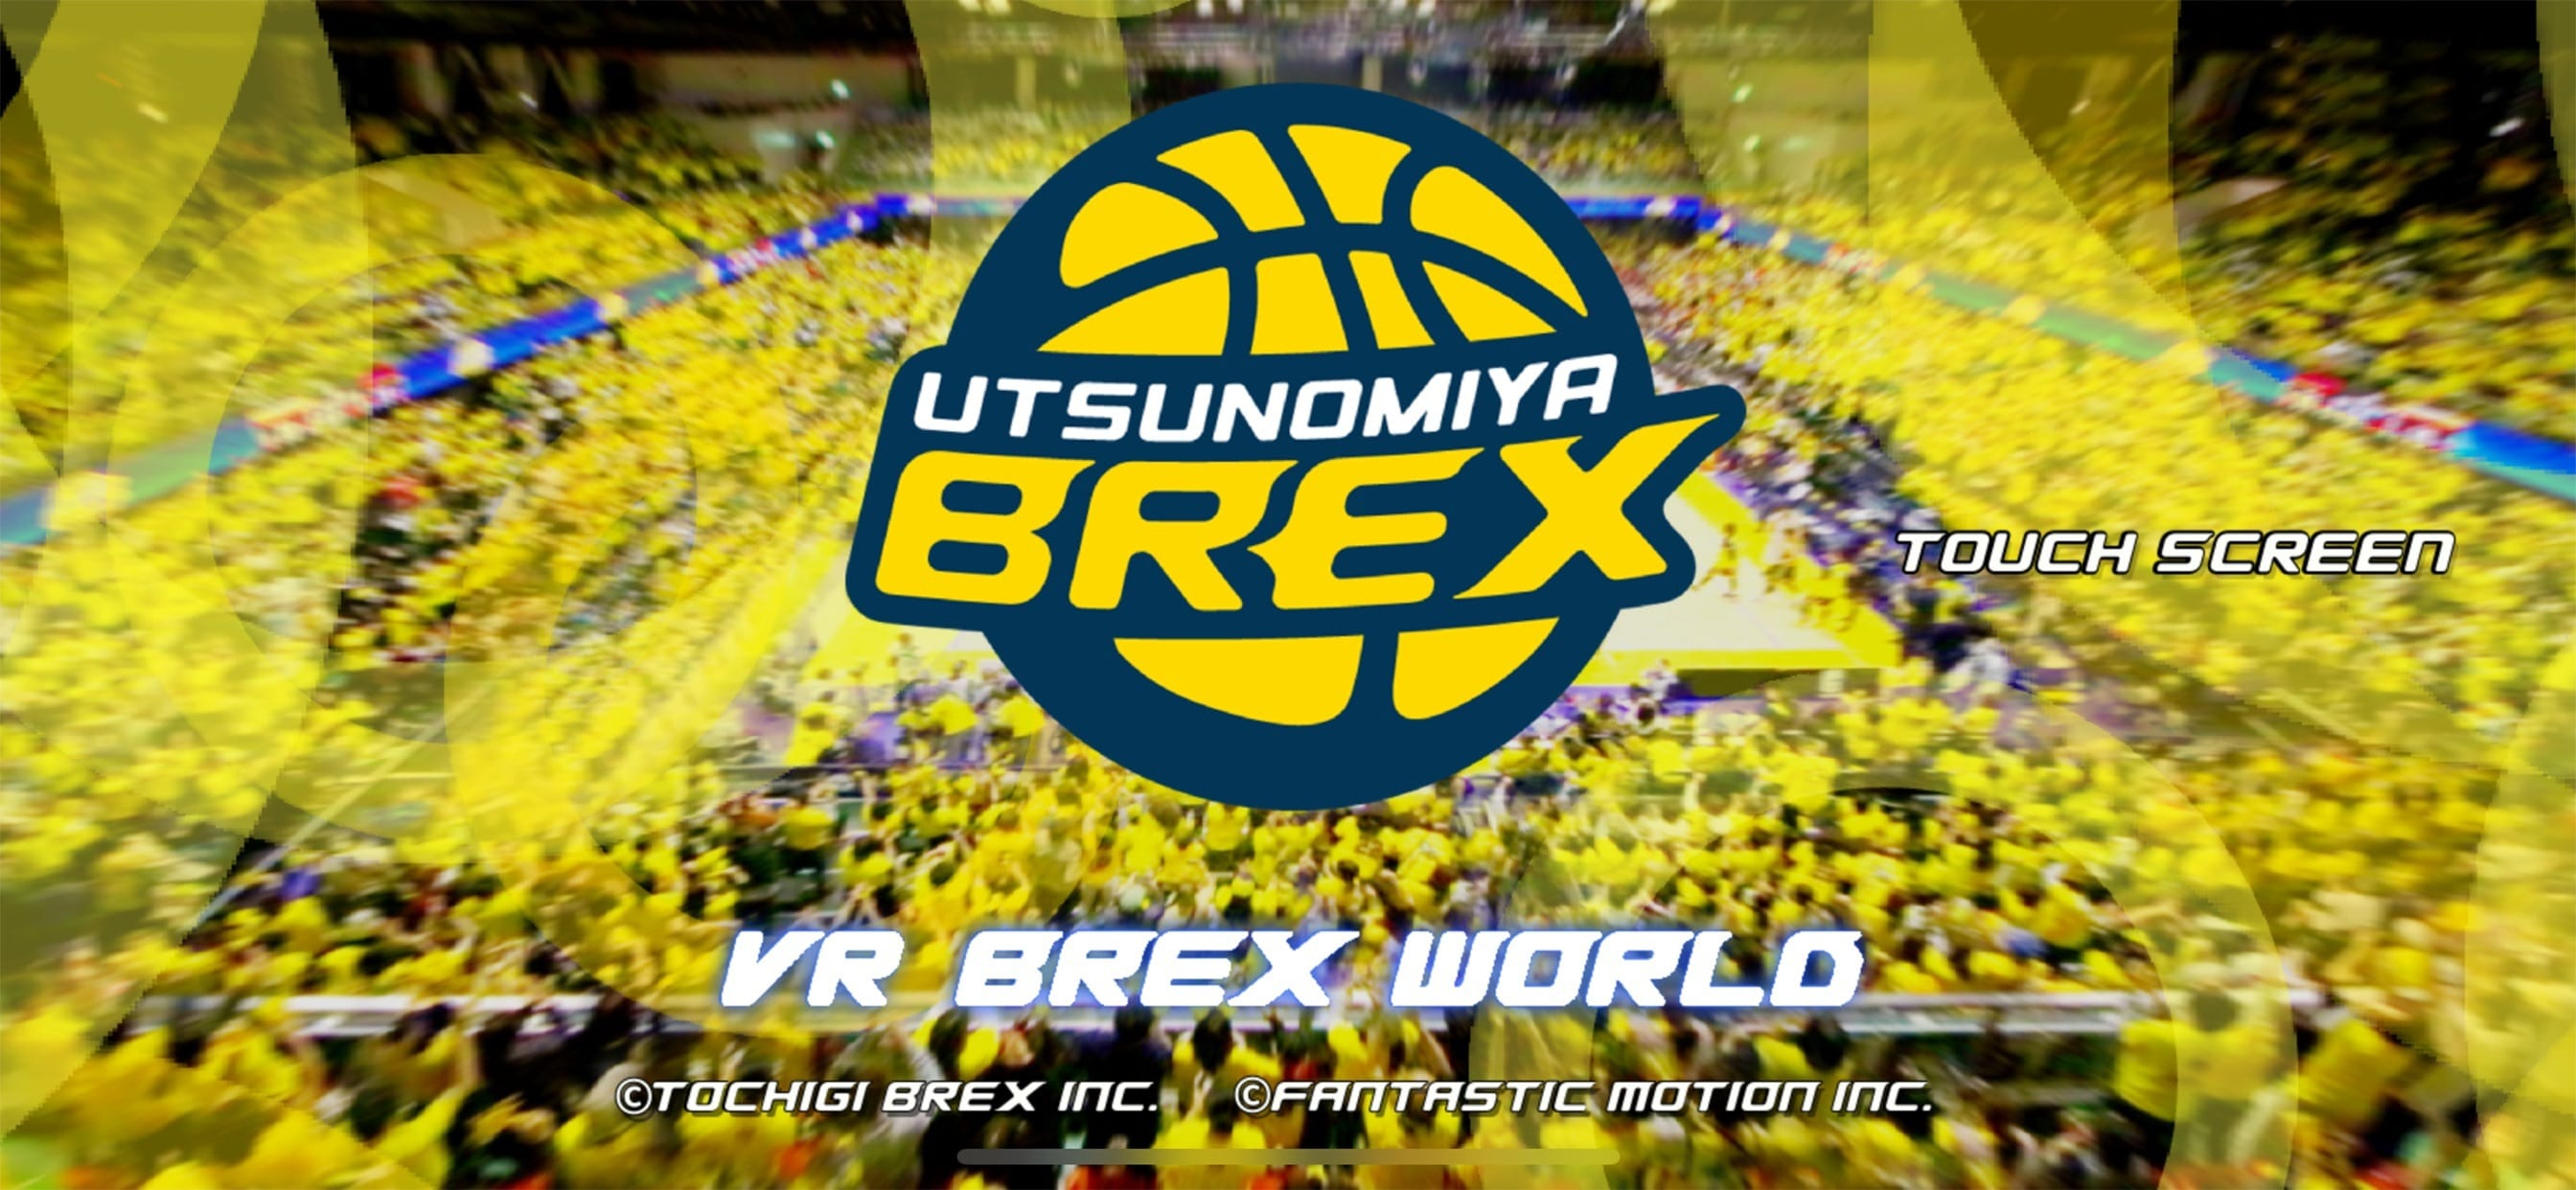 VR BREX WORLD 202012 update 1